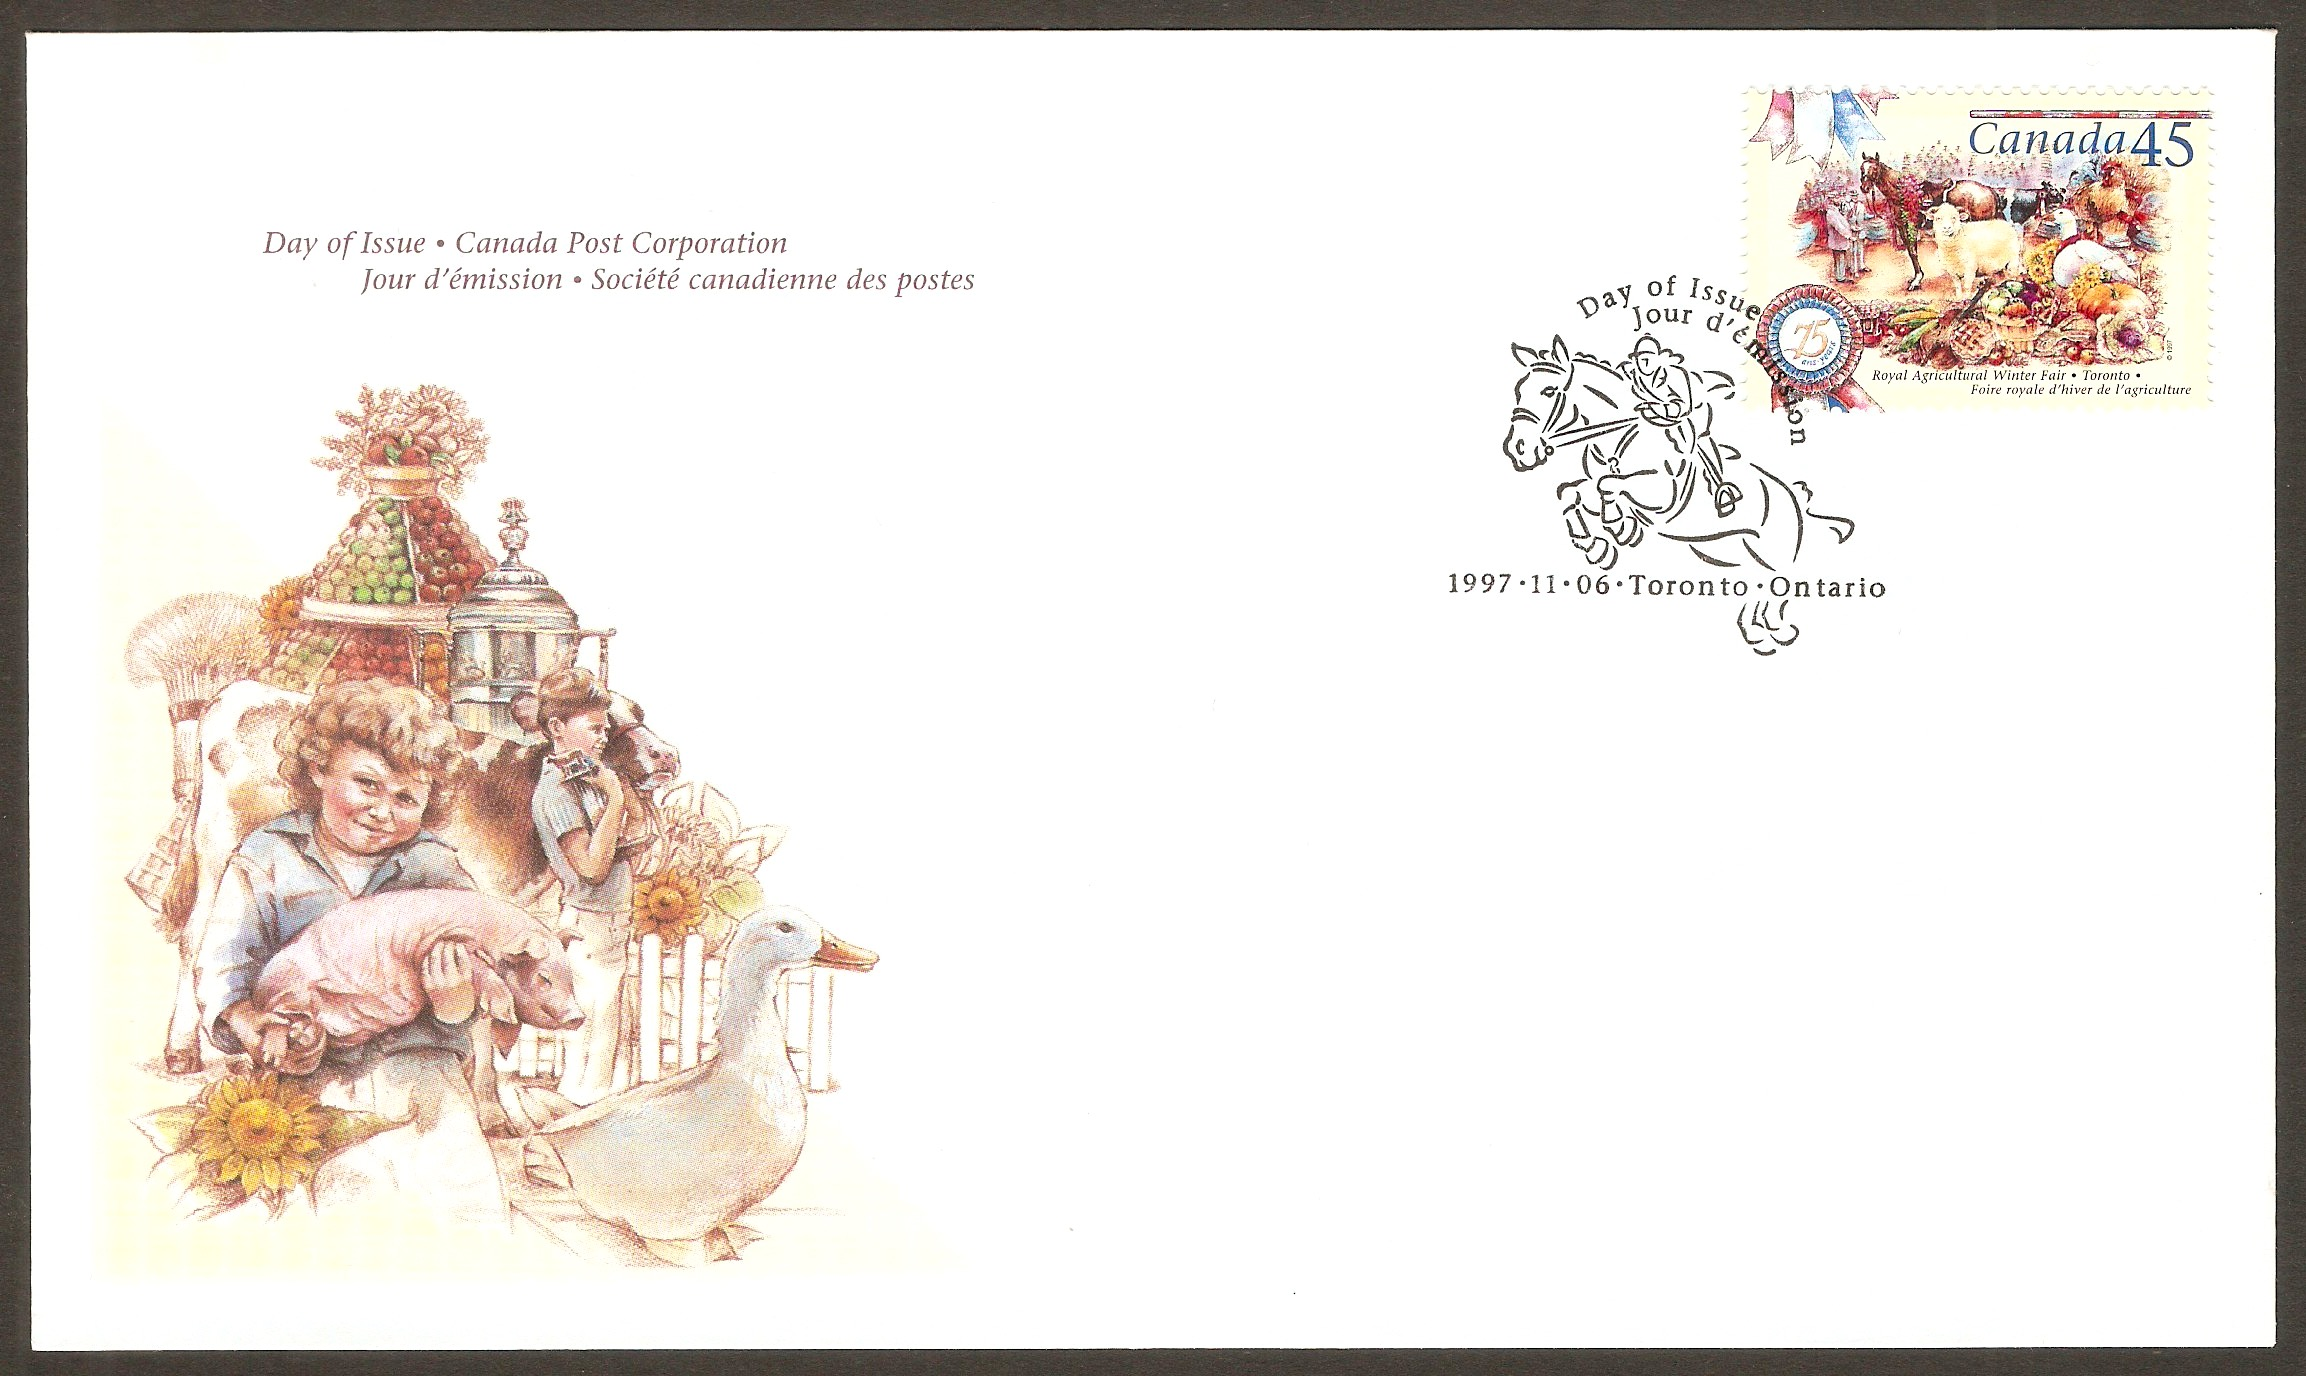 Canada 1997 Royal Agricultural Fair FDC.